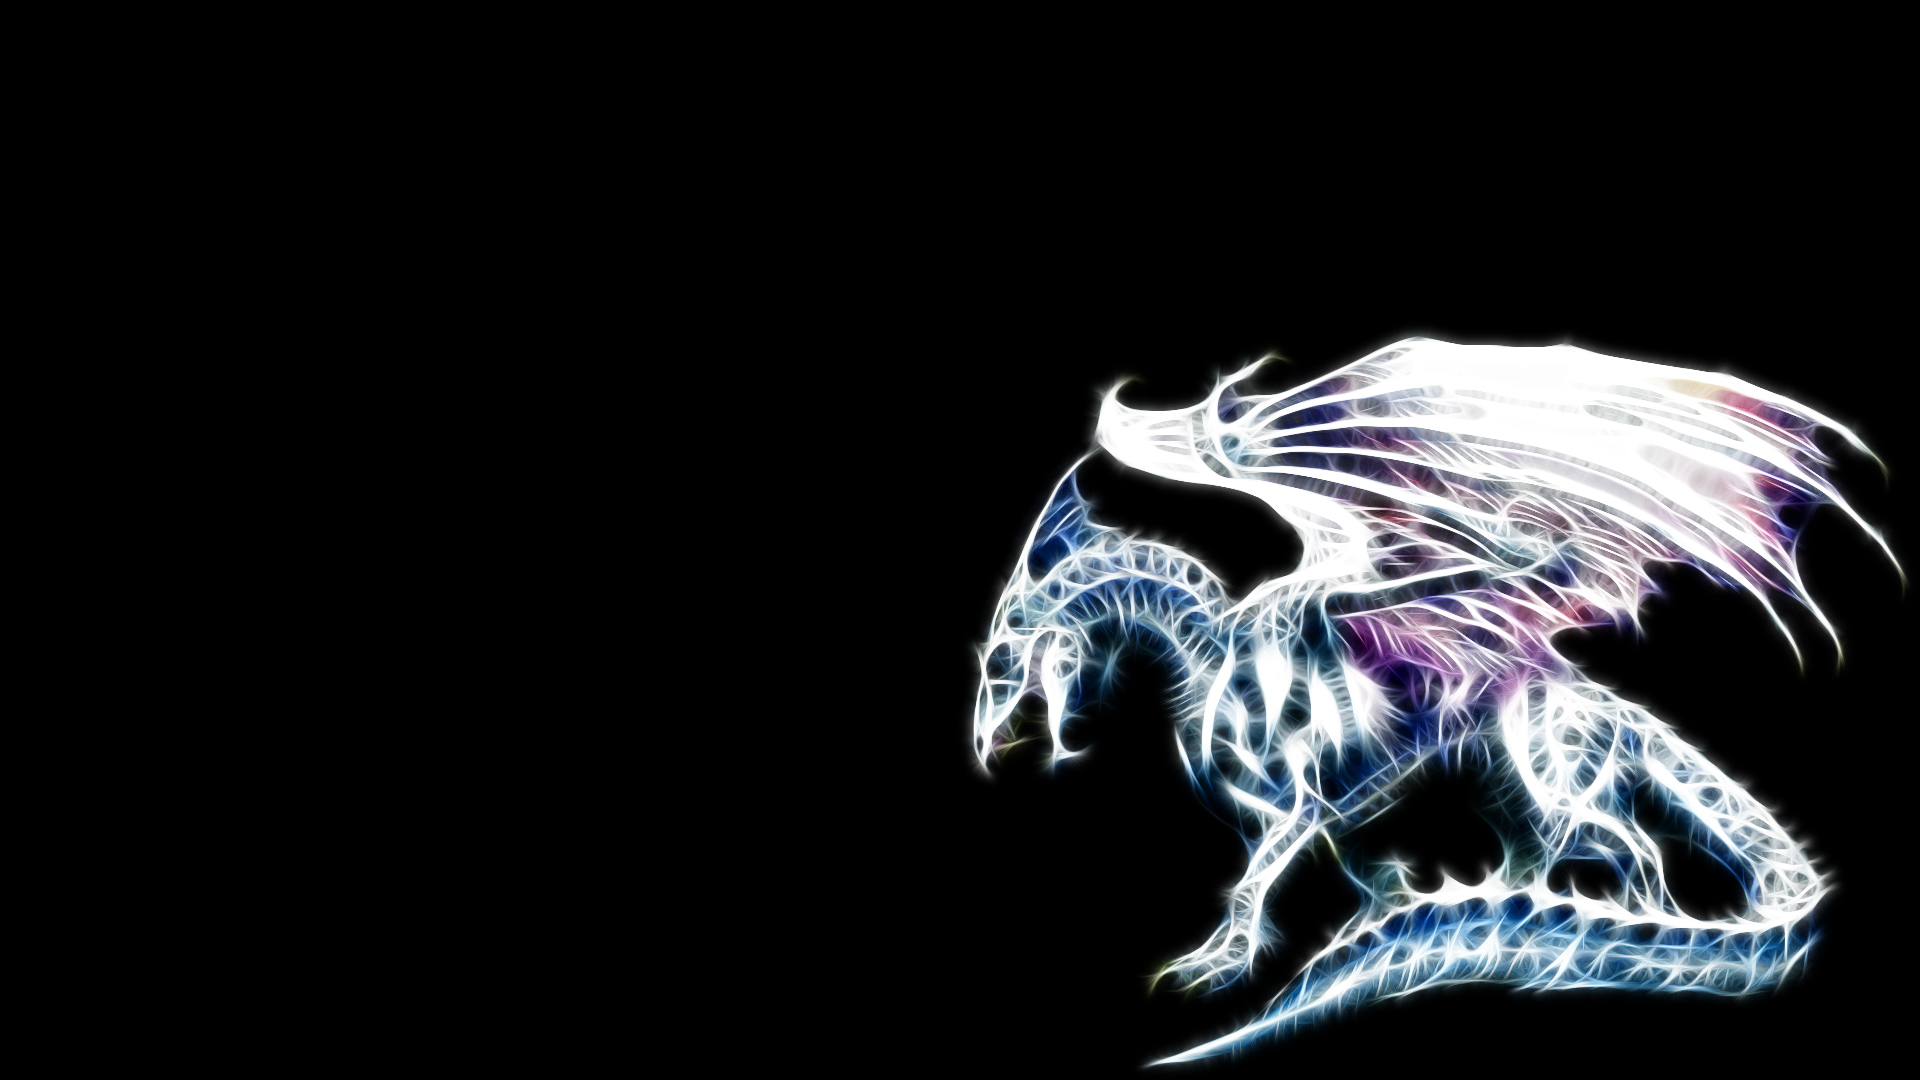 Dragon Wallpaper Background  WallpaperSafari